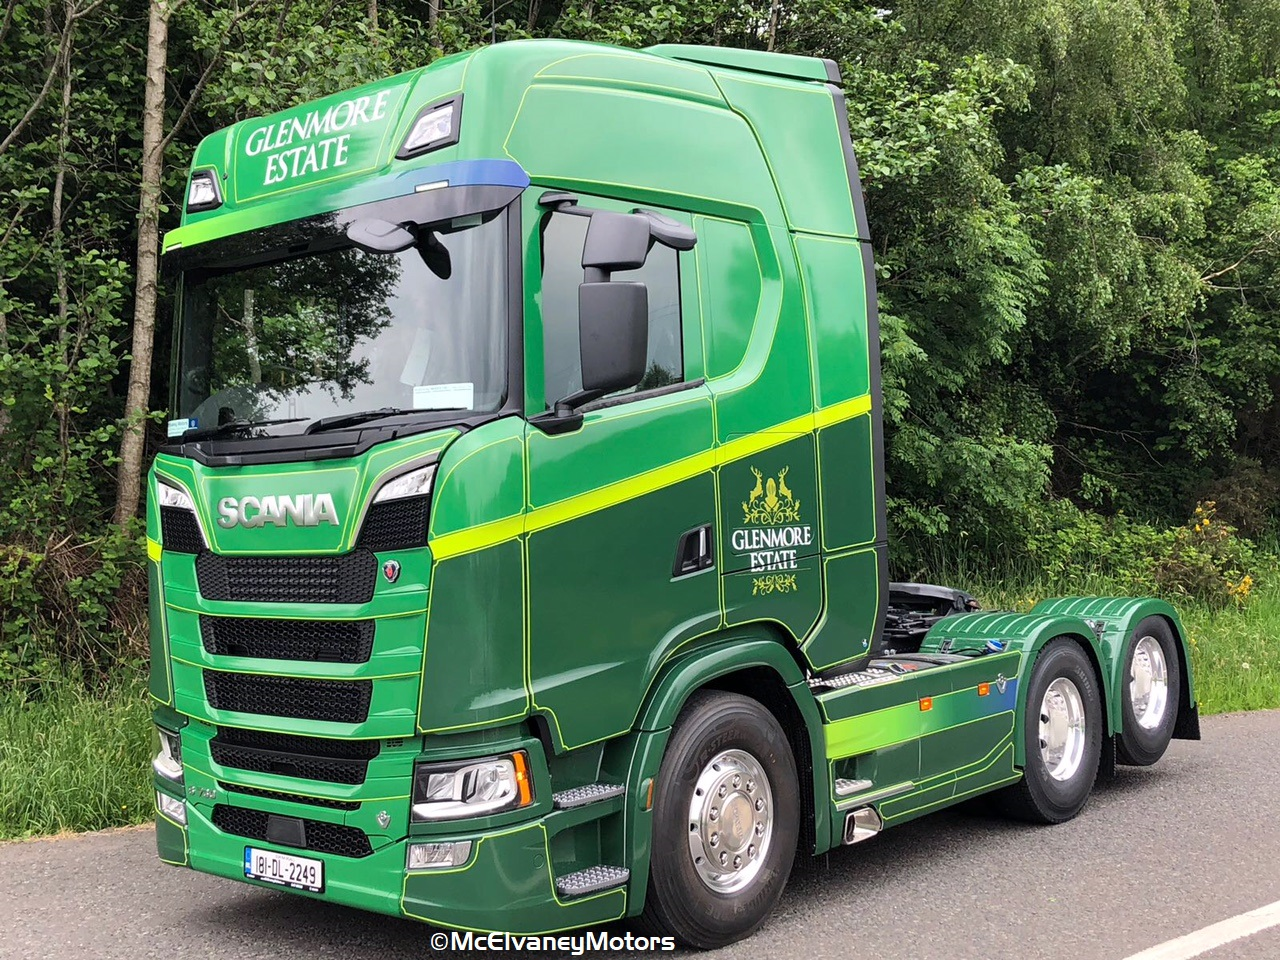 New Generation Scania S730 for Glenmore Estate